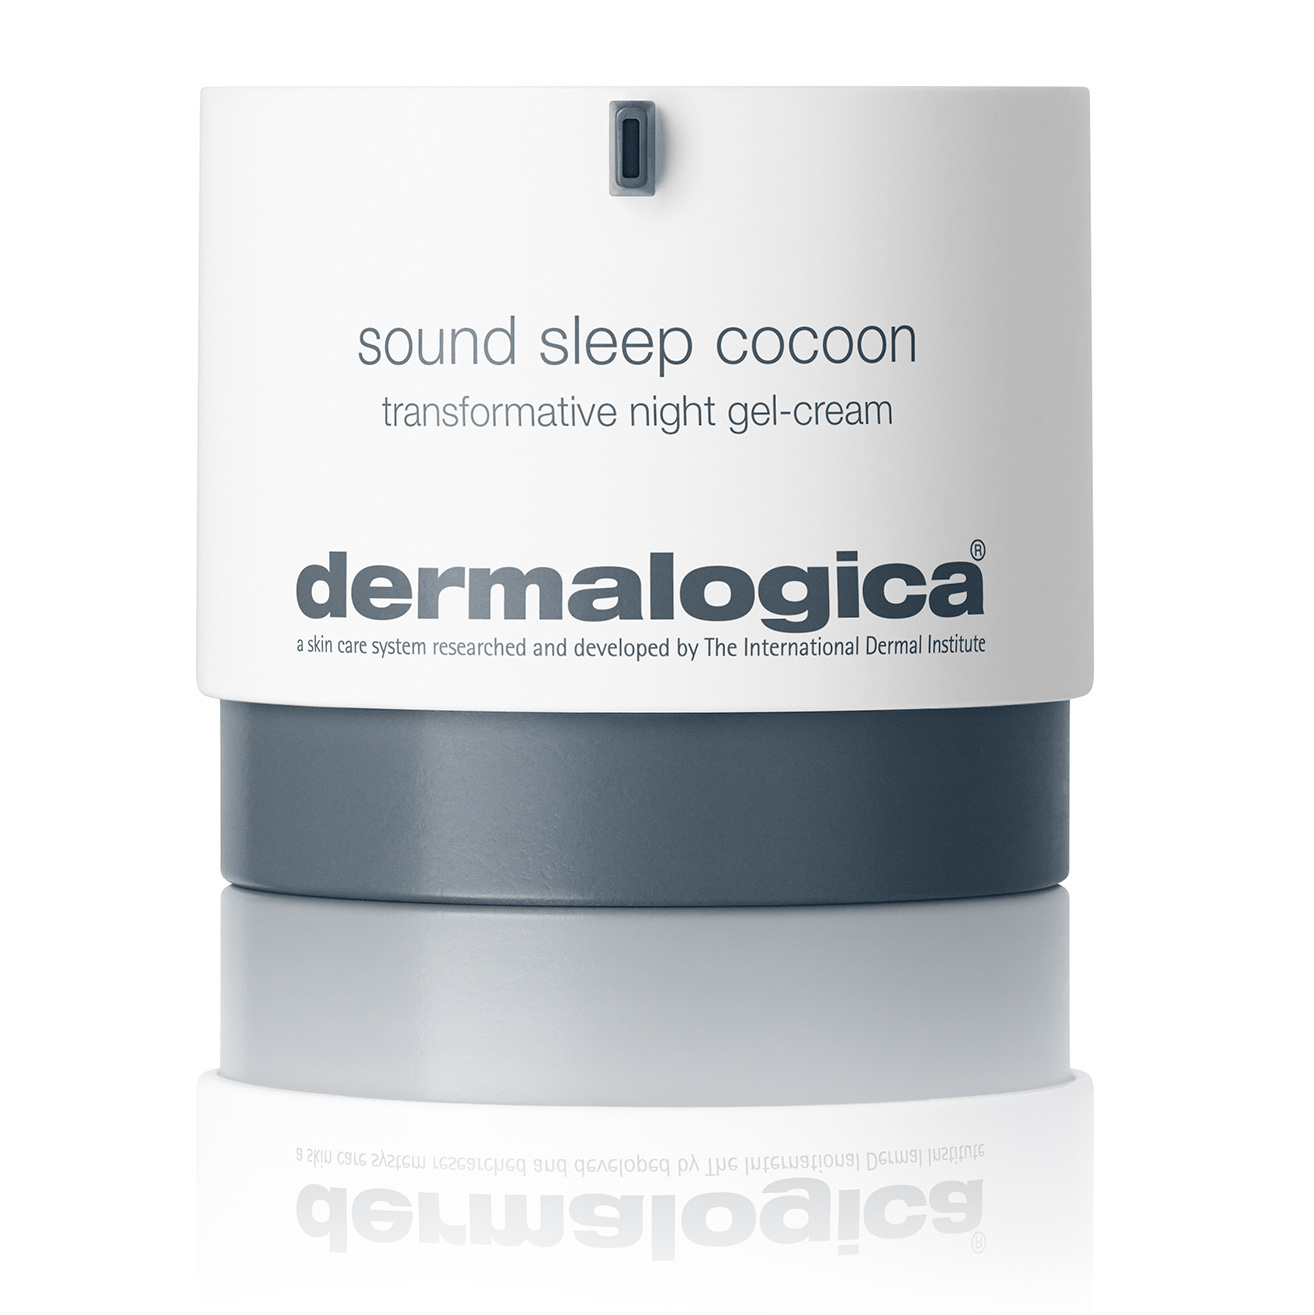 This nighttime moisturizer releases motion-activated lavender to help you get a restful sleep.